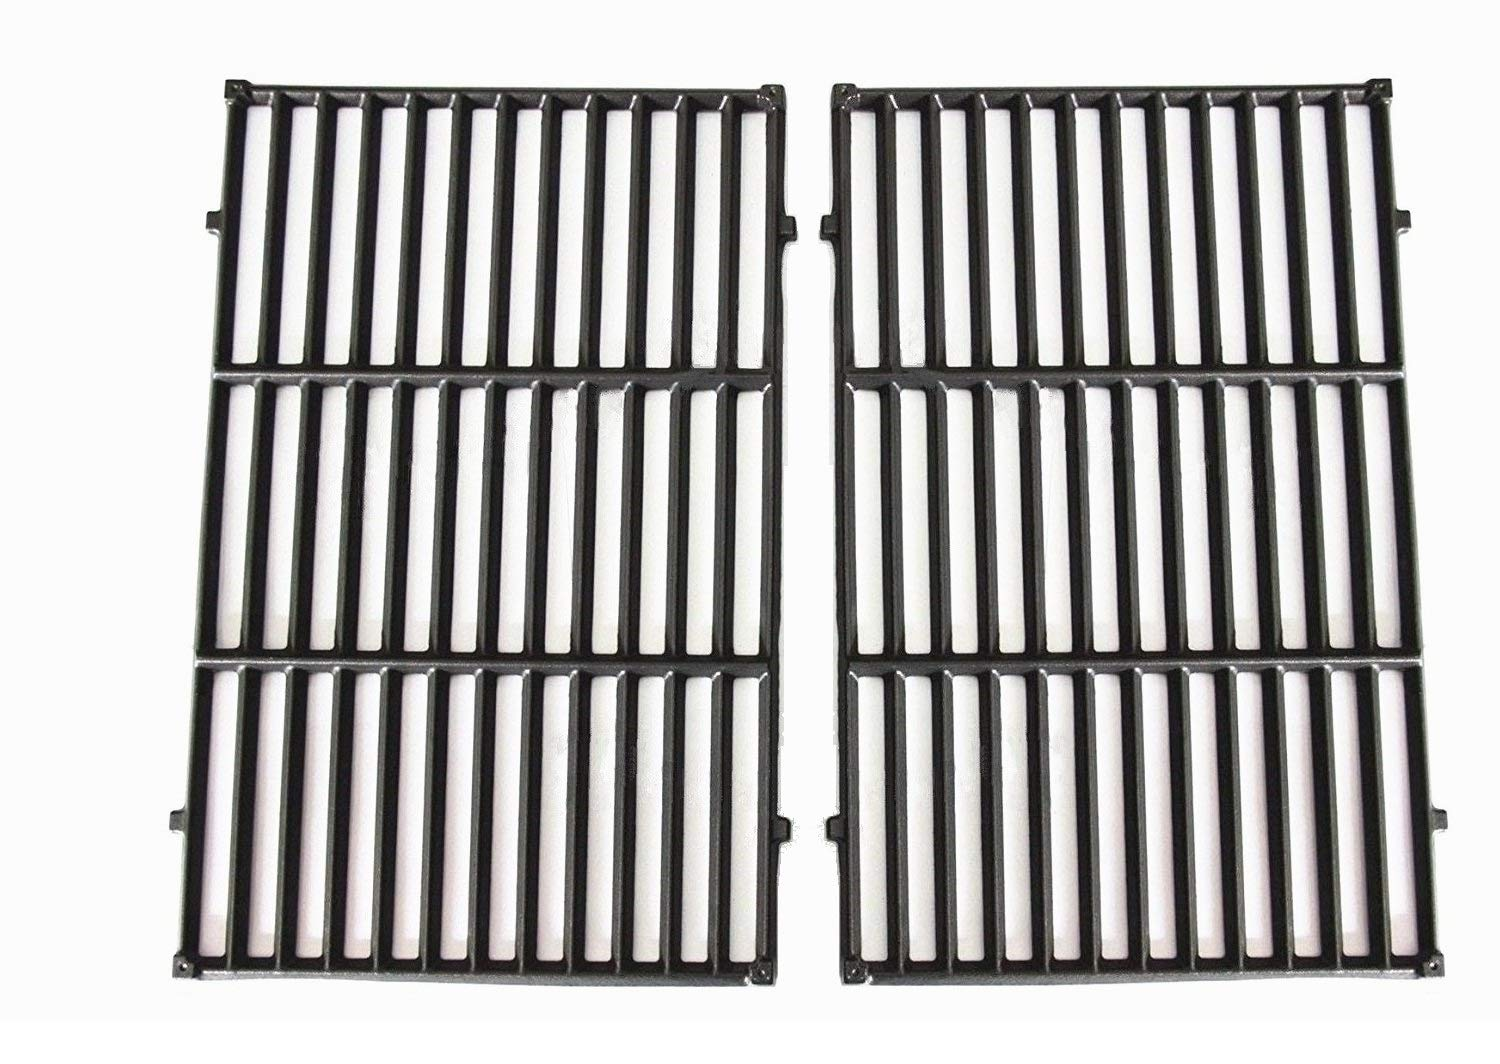 """Hongso 19.5"""" Cast Iron Cooking Grid Grates Replacement for Weber Genesis E-310, E-320, E-330, Genesis S-310, S-320, S-330, Genesis EP-310, EP-320, EP-330 Gas Grill, Set of 2, 7524 307524 40312501"""